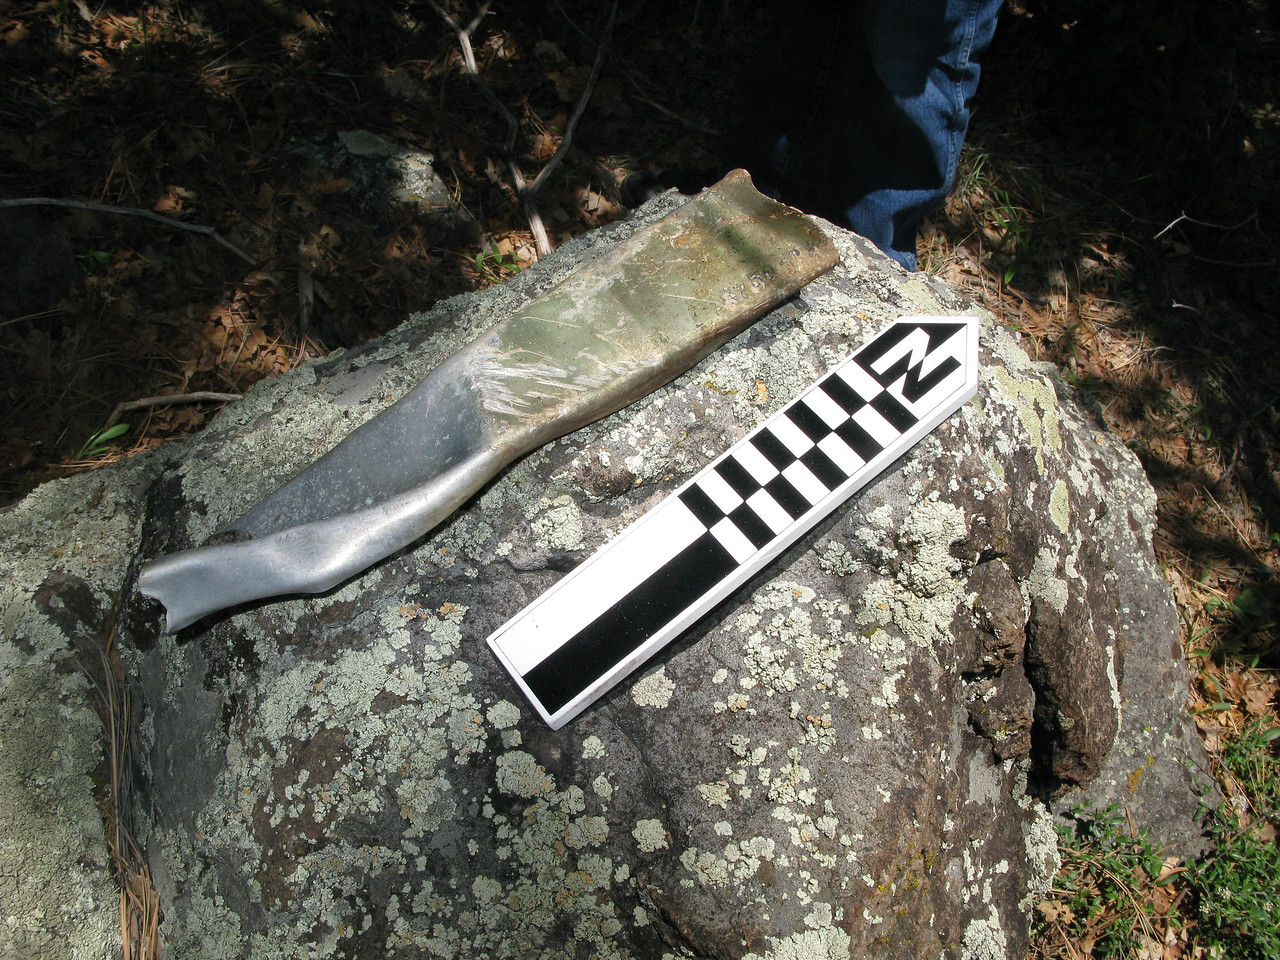 The use of a metal detector helped locate this partially buried fuselage stringer support.